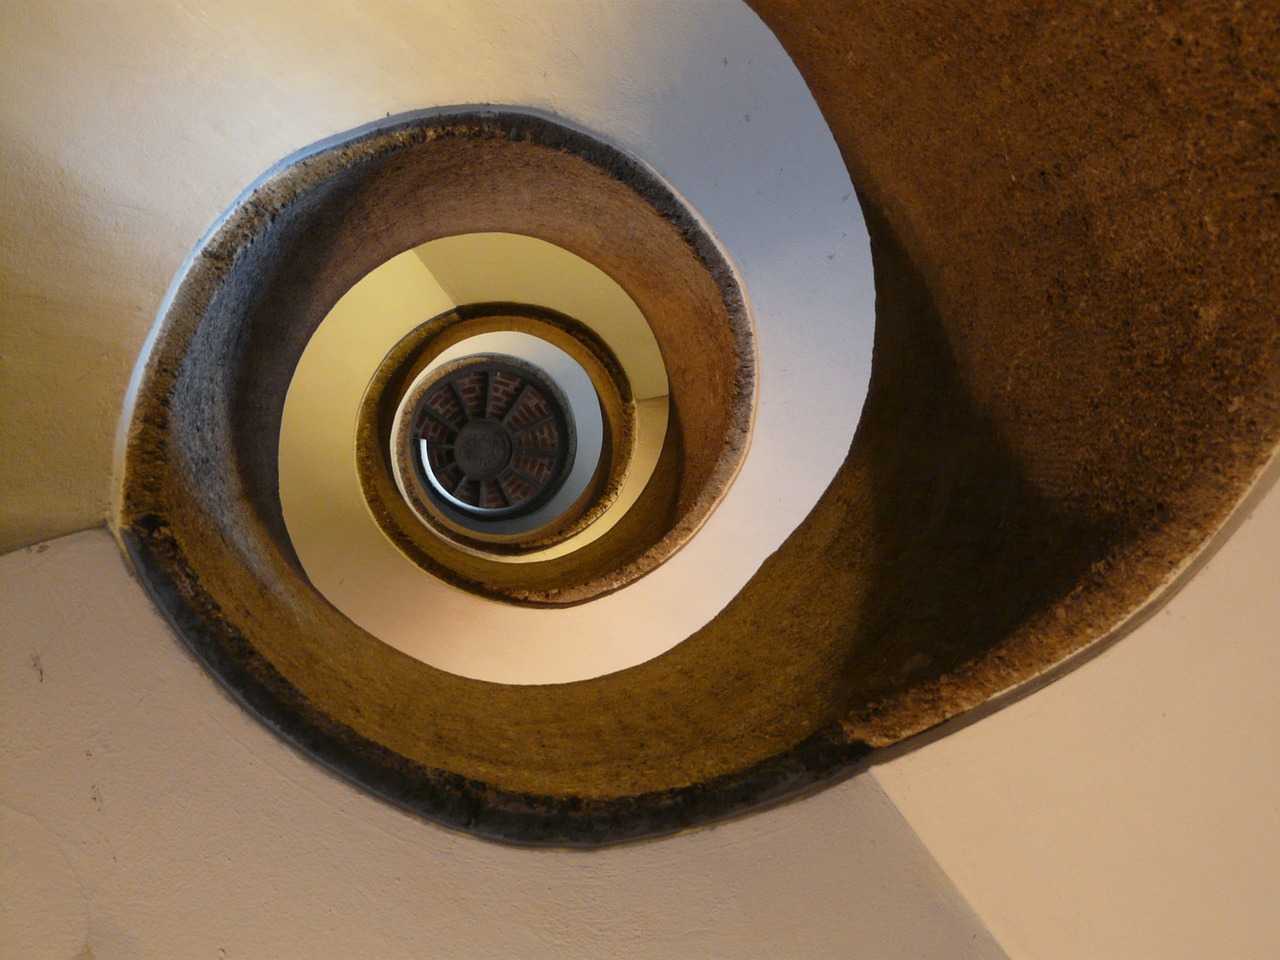 stairs spiral staircase emergence free photo